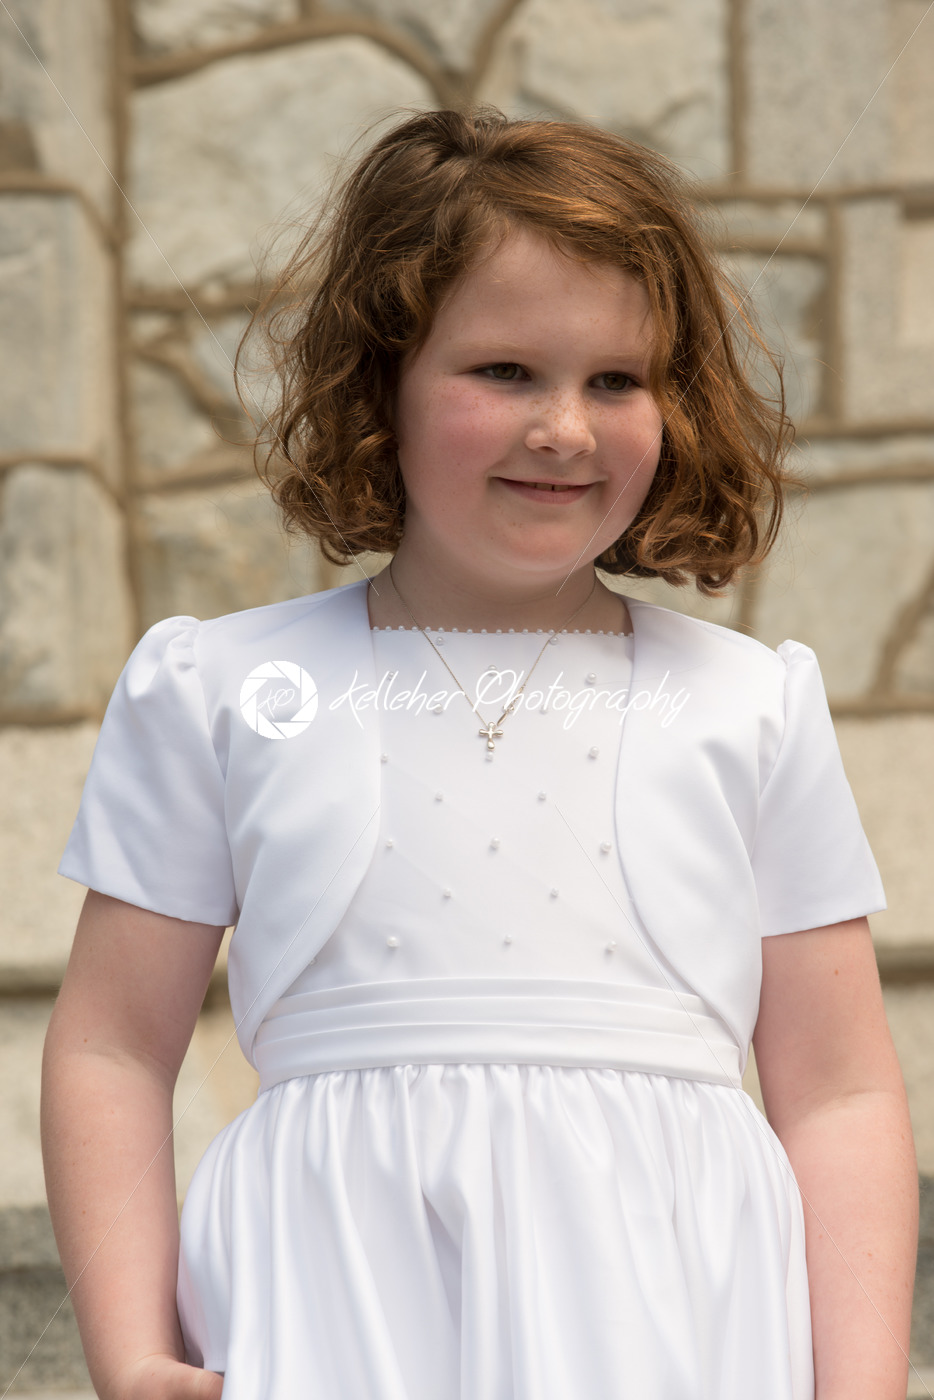 VILLANOVA, PA – MAY 14: Young Girl dressed up receiving her First Holy Communion at St. Thomas of Villanova Church - Kelleher Photography Store